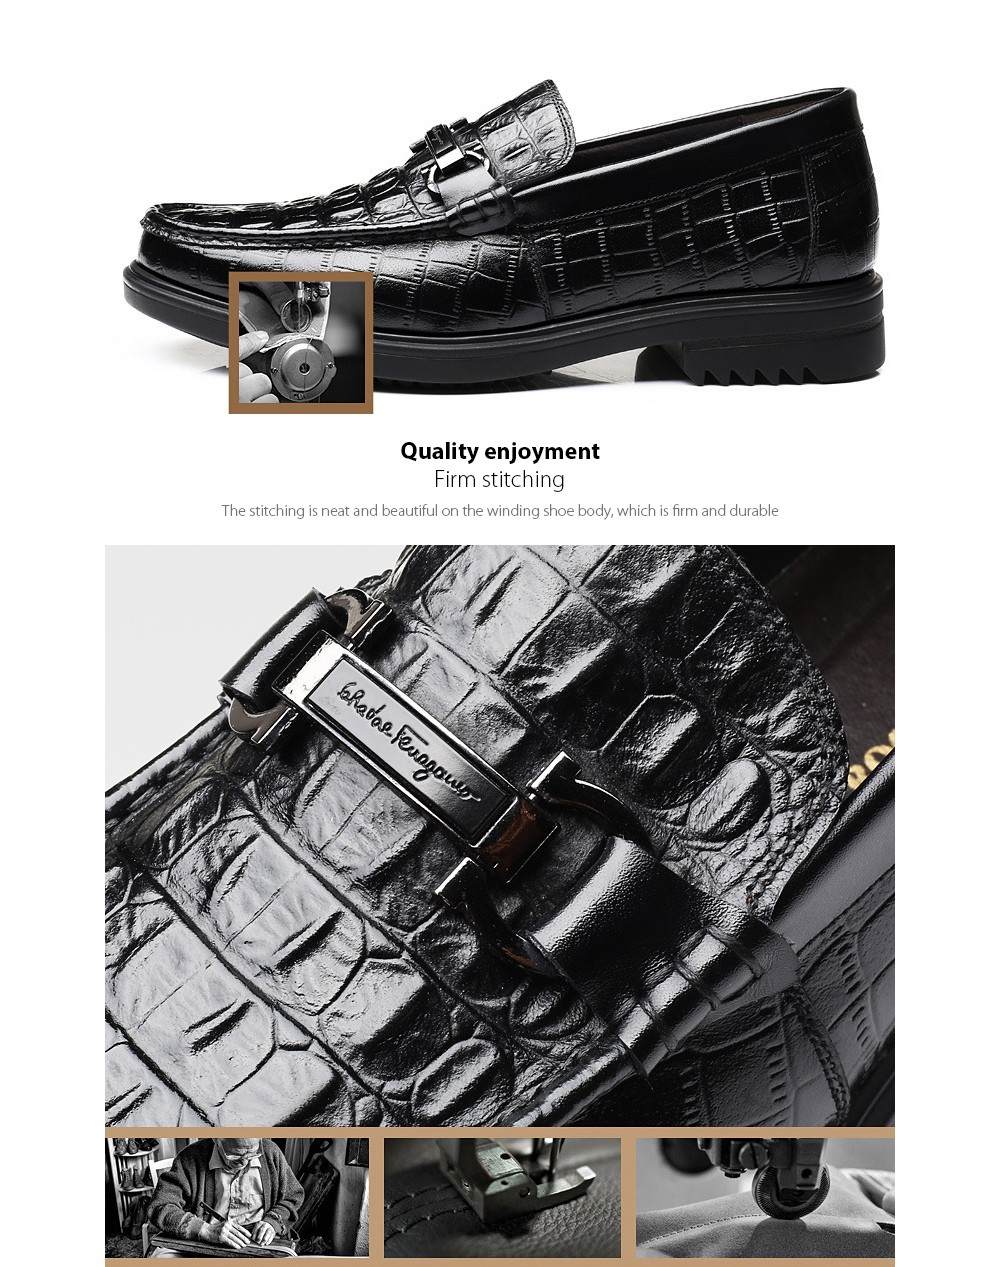 Men Shoes Firm stitching